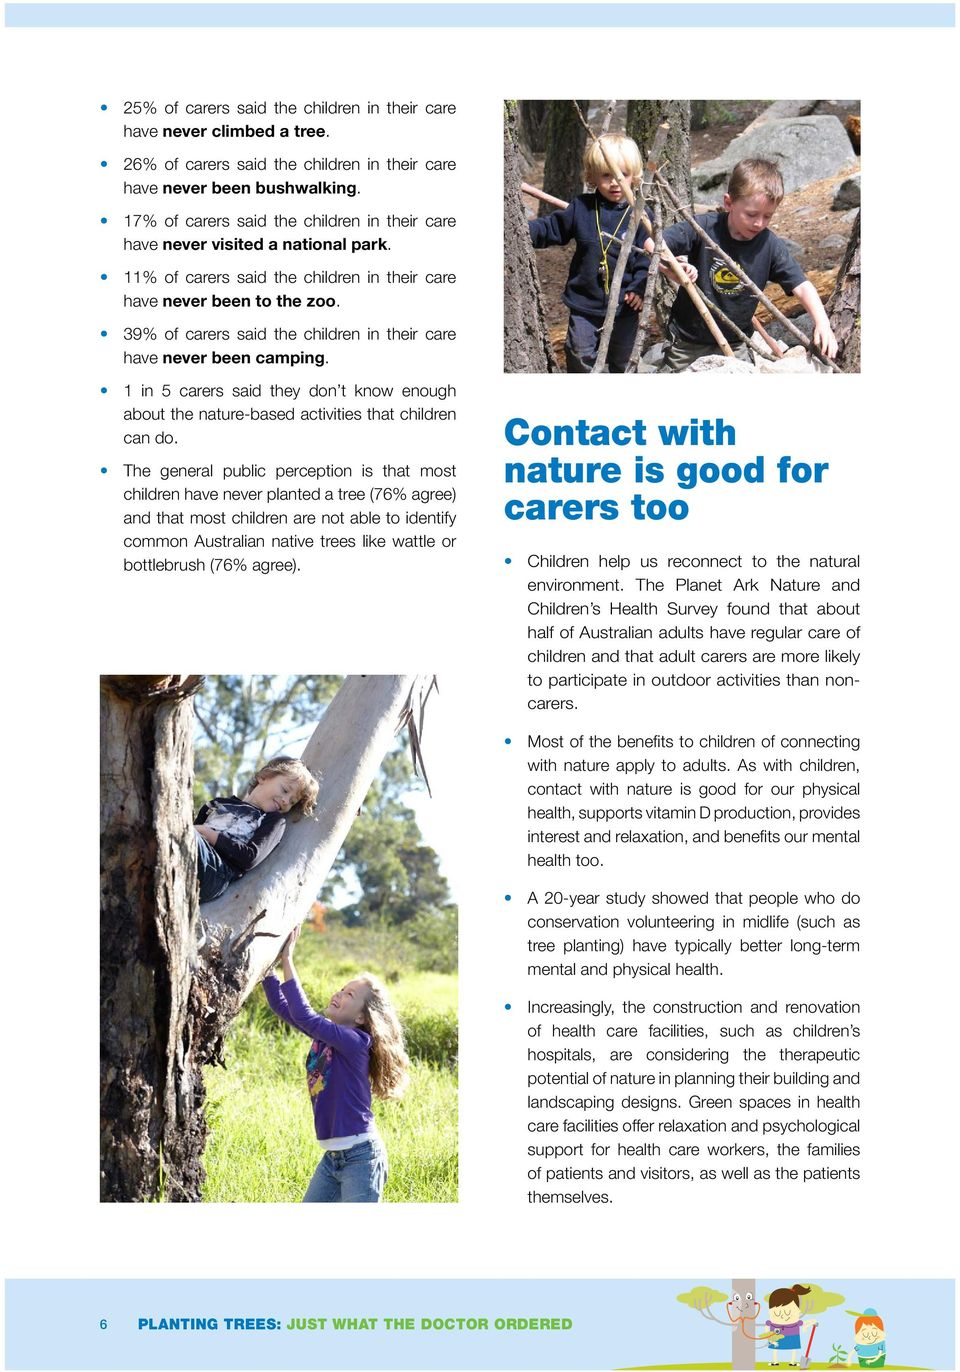 1 in 5 carers said they don t know enough about the nature-based activities that children can do.